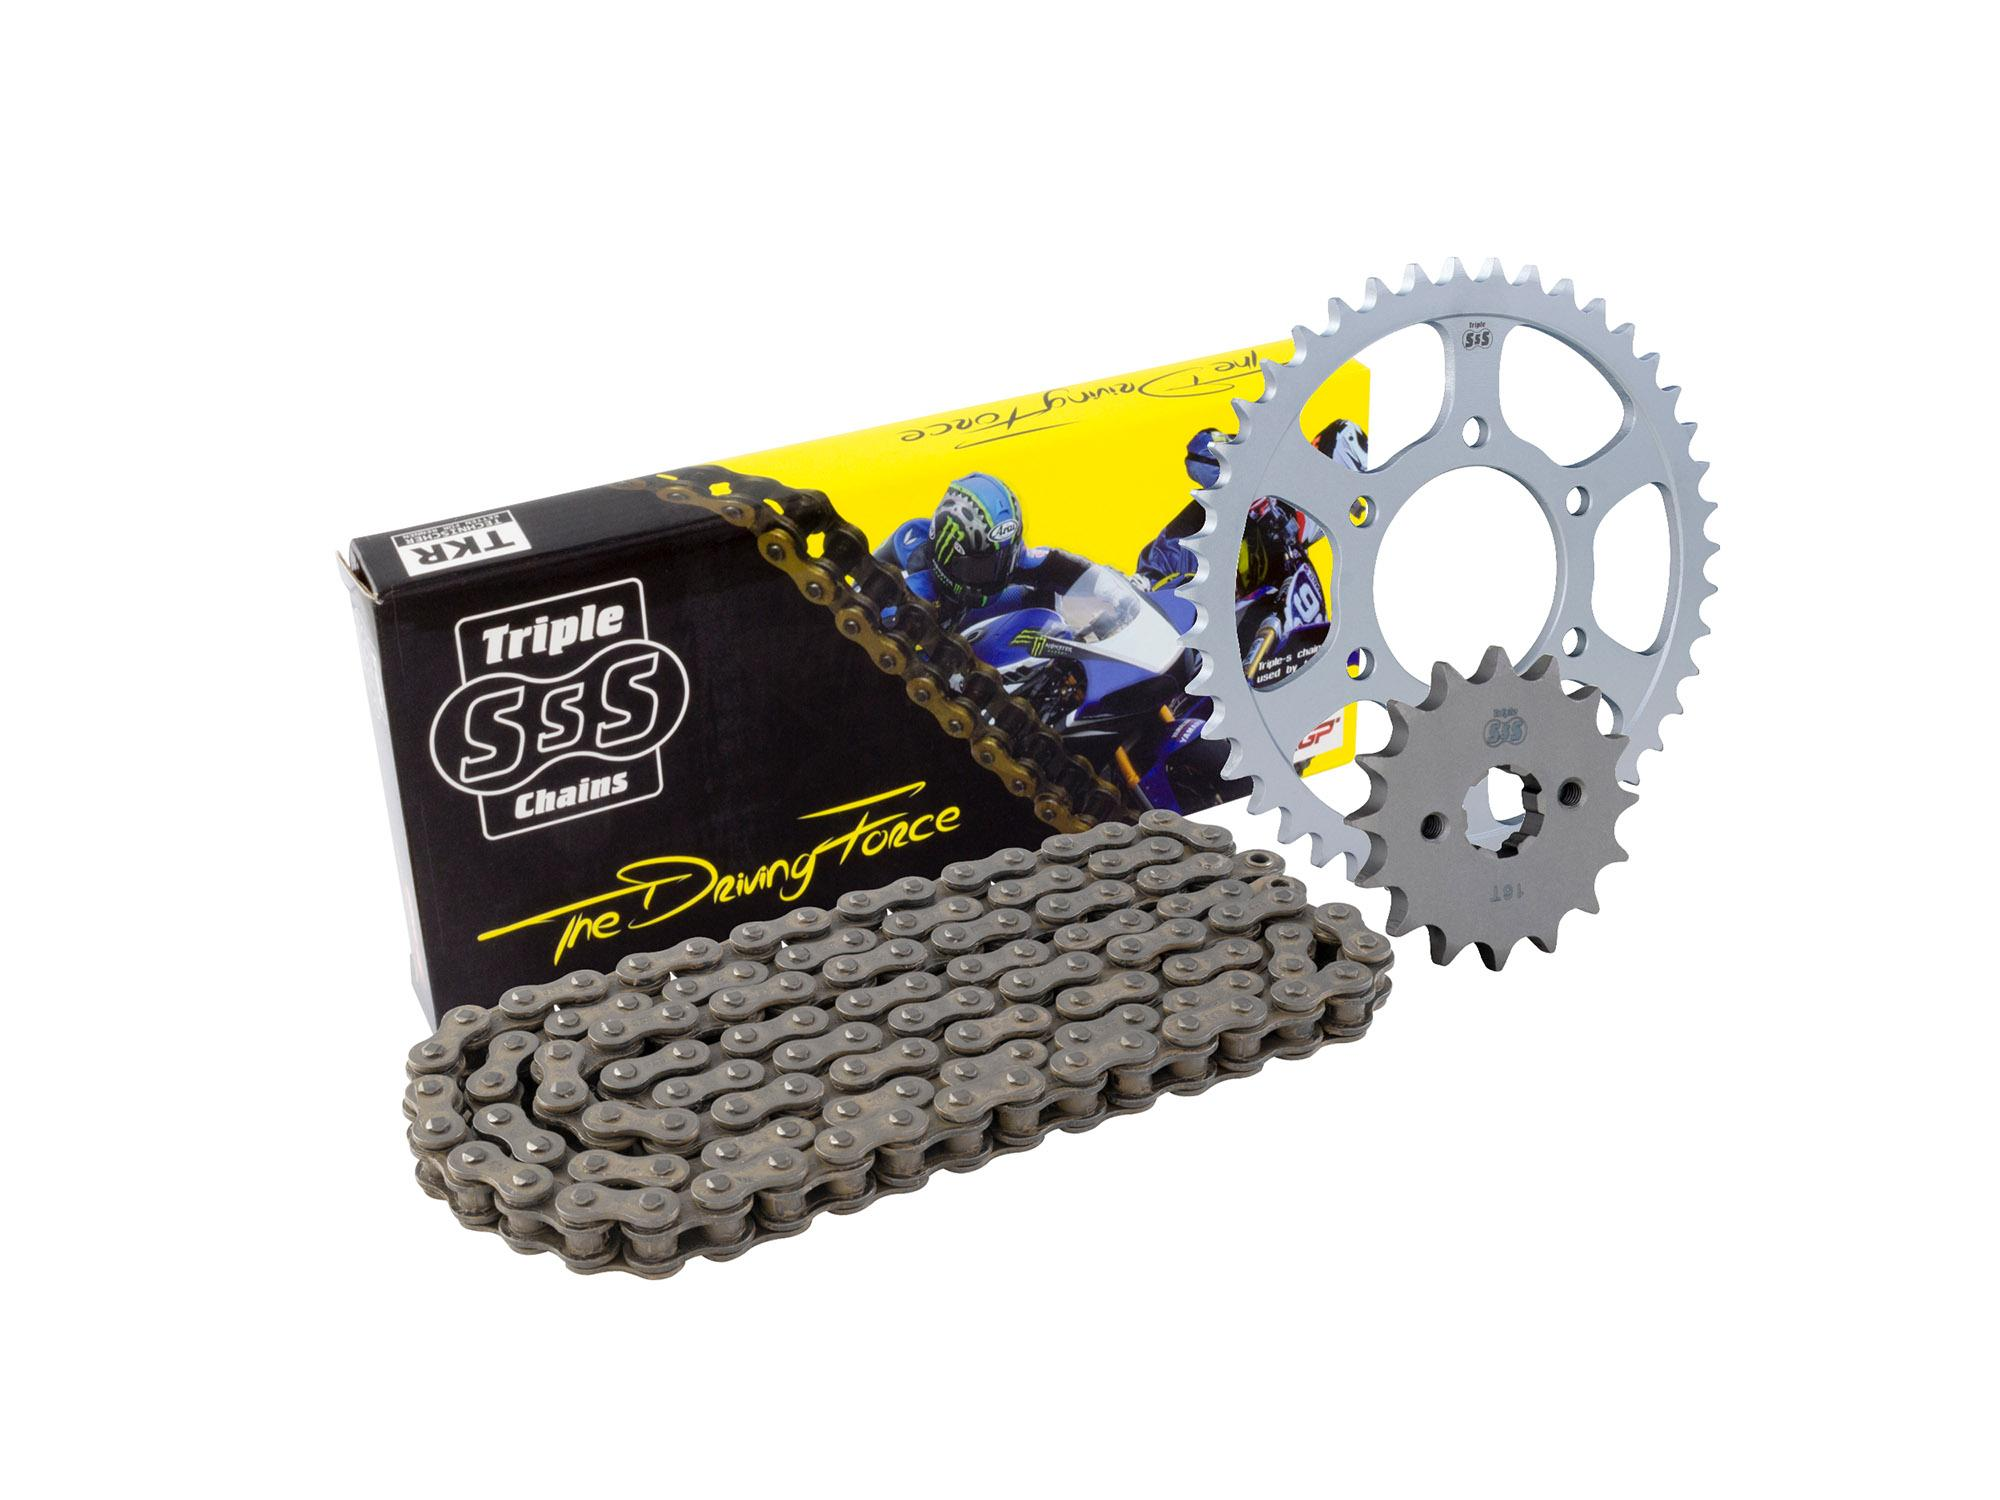 Kawasaki KLX250 S TCF 12> Chain & Sprocket Kit: 14T Front, 42T Rear, HD O-Ring Black Chain 520H 106Link